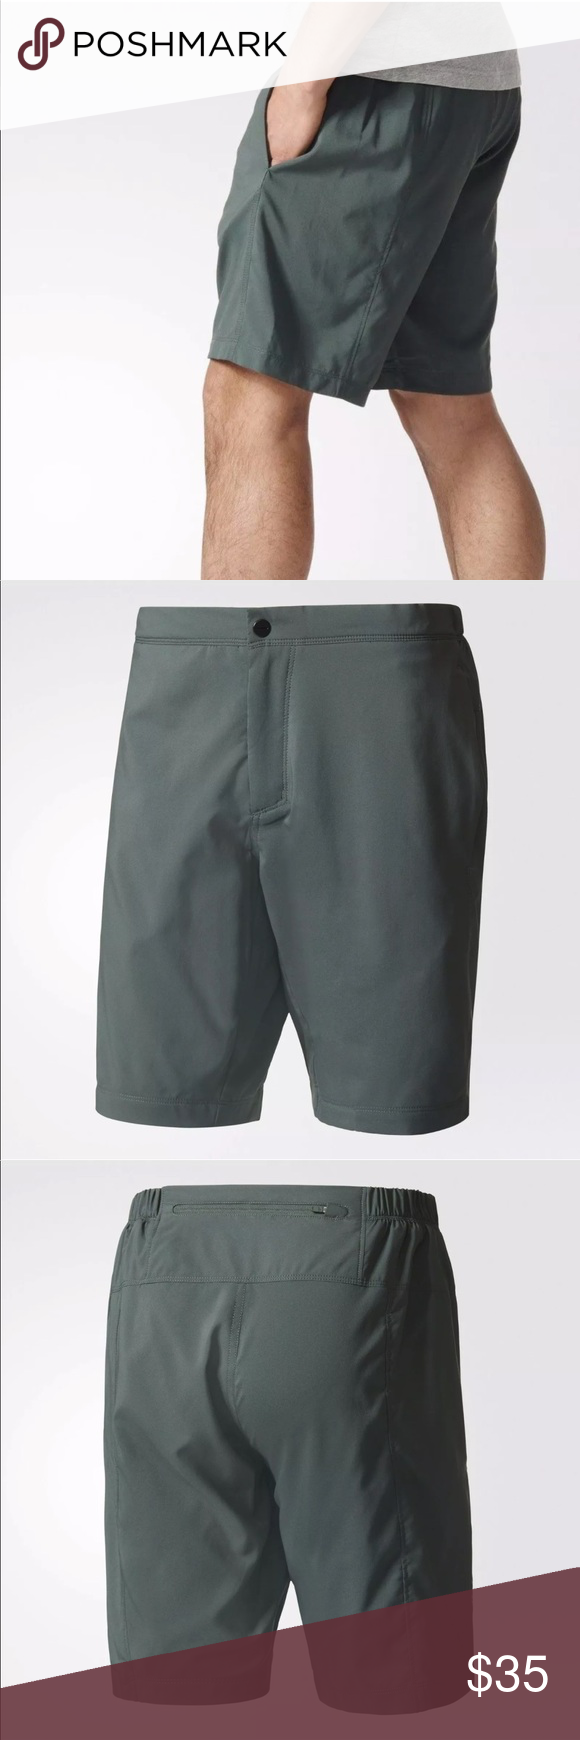 becf8b387b3 Men s Adidas Outdoor Terrex Mountain Fly Shorts MEN S ADIDAS TERREX  MOUNTAIN FLY SHORTS NEW AUTHENTIC MEN S